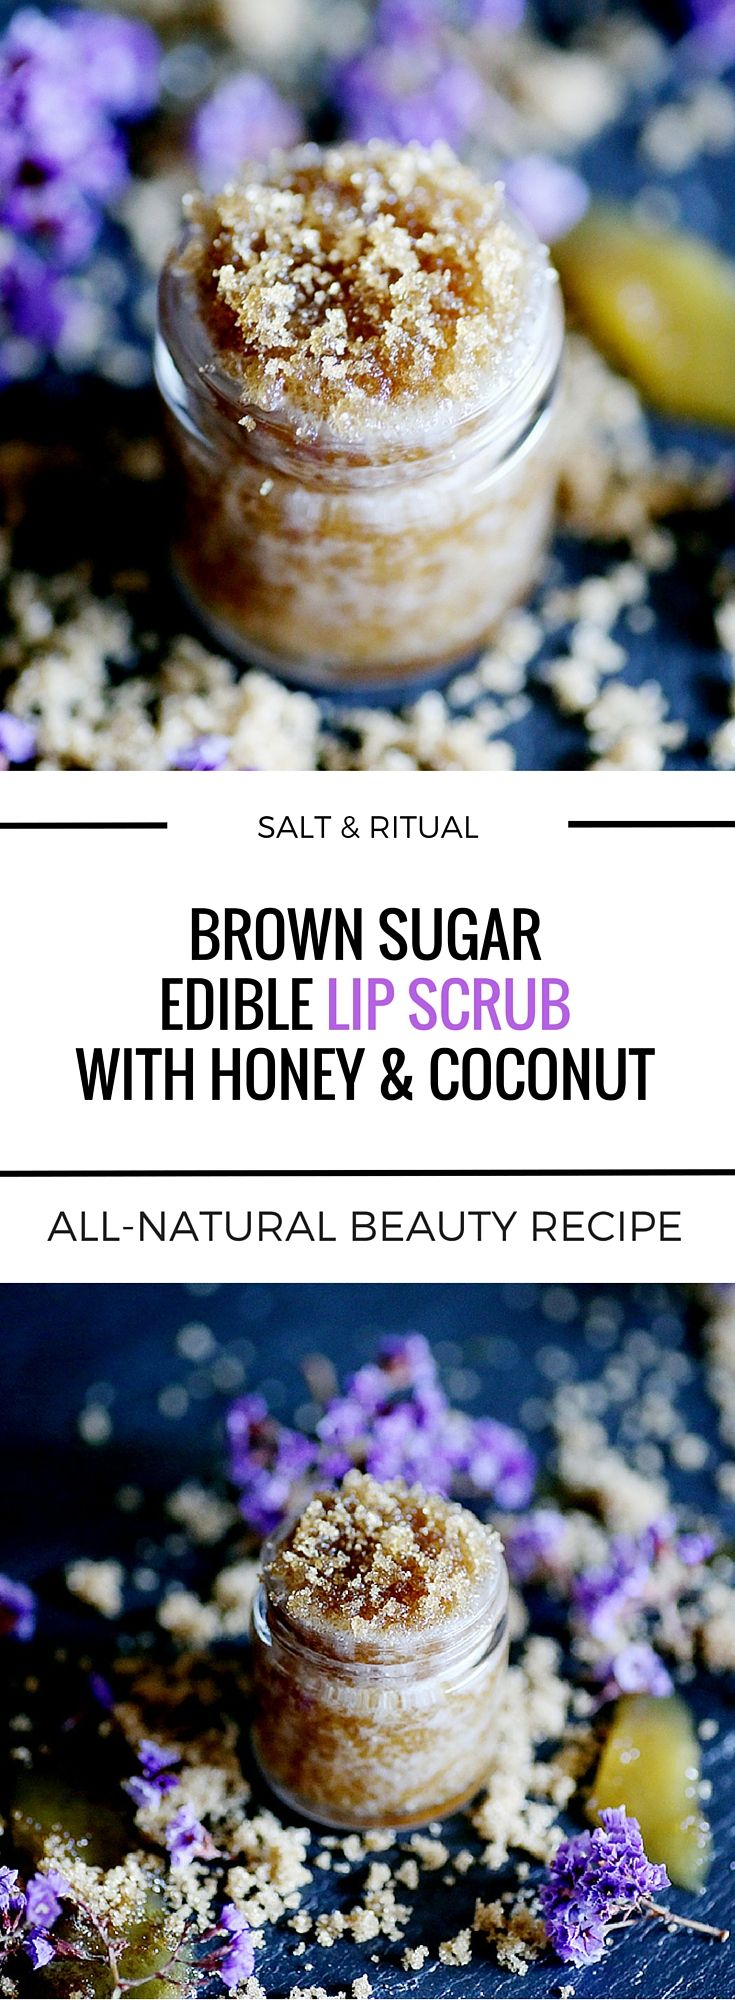 Incredibly sweet edible lip scrub with only three ingredients: brown sugar, coconut oil and raw honey. An all natural lip polish DIY. Tastes like cake batter!